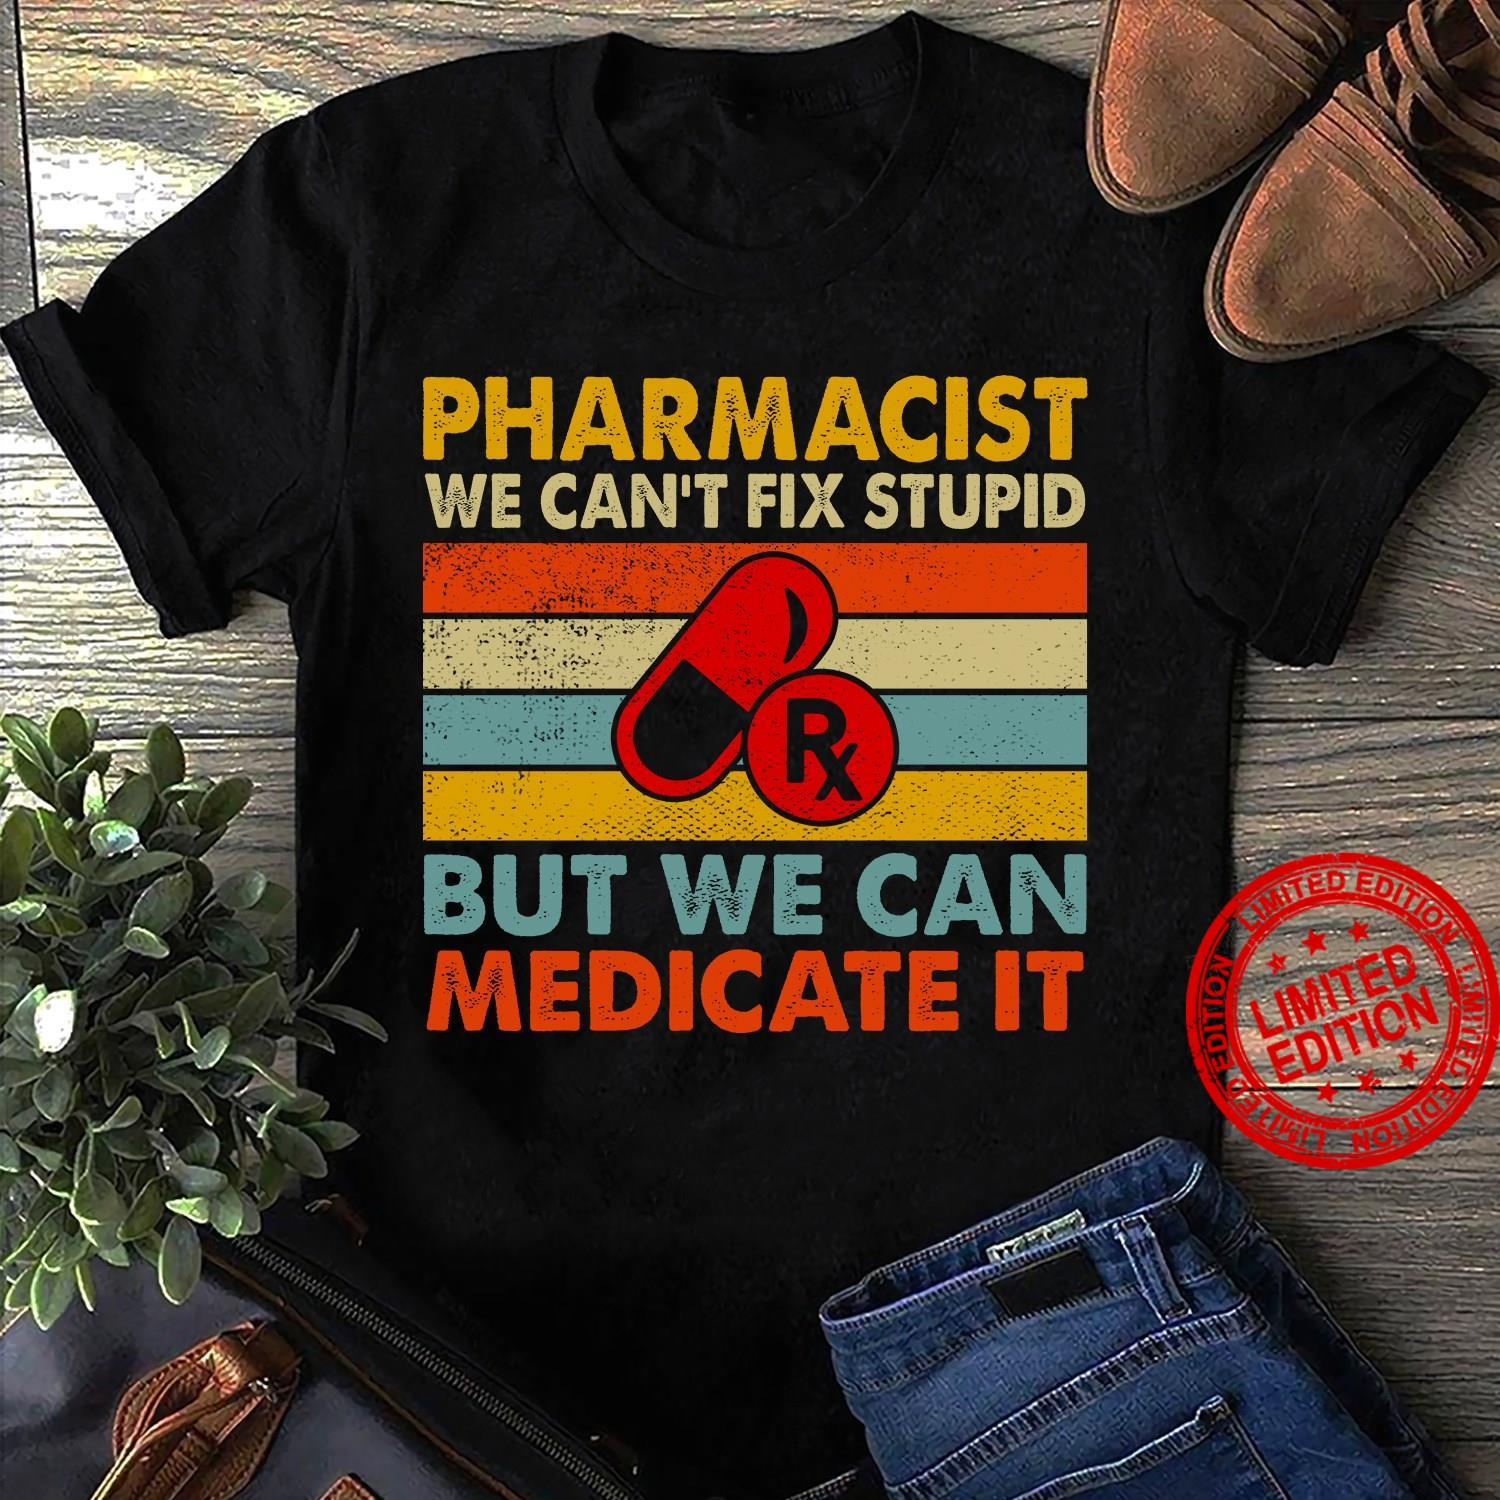 Pharmacist We Can't Fix Stupid But We Can Medicate It Shirt